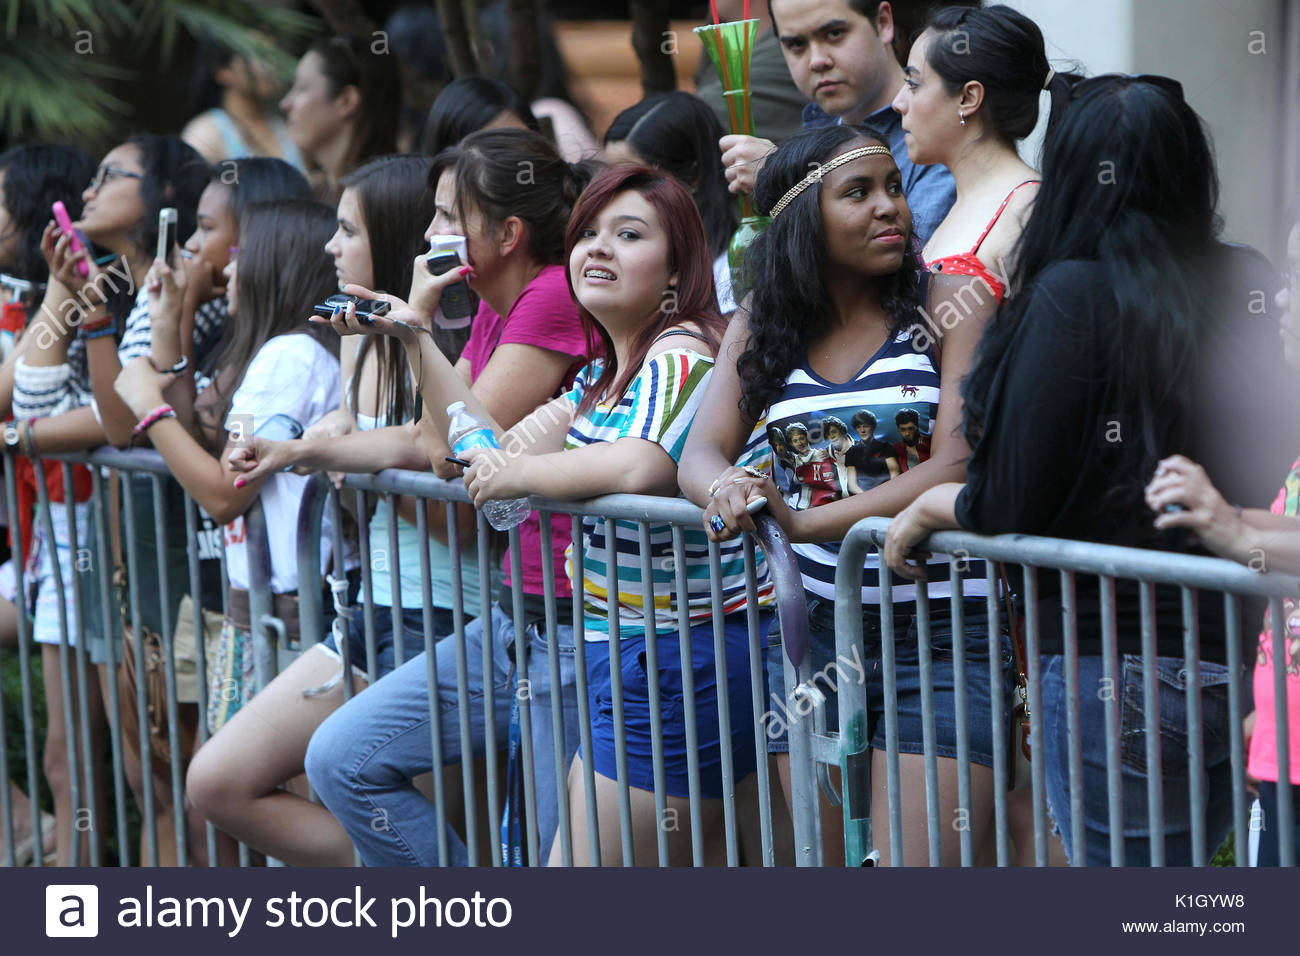 Fans Wait To Catch A Glimpse Of One Direction And Olly Murs In Las